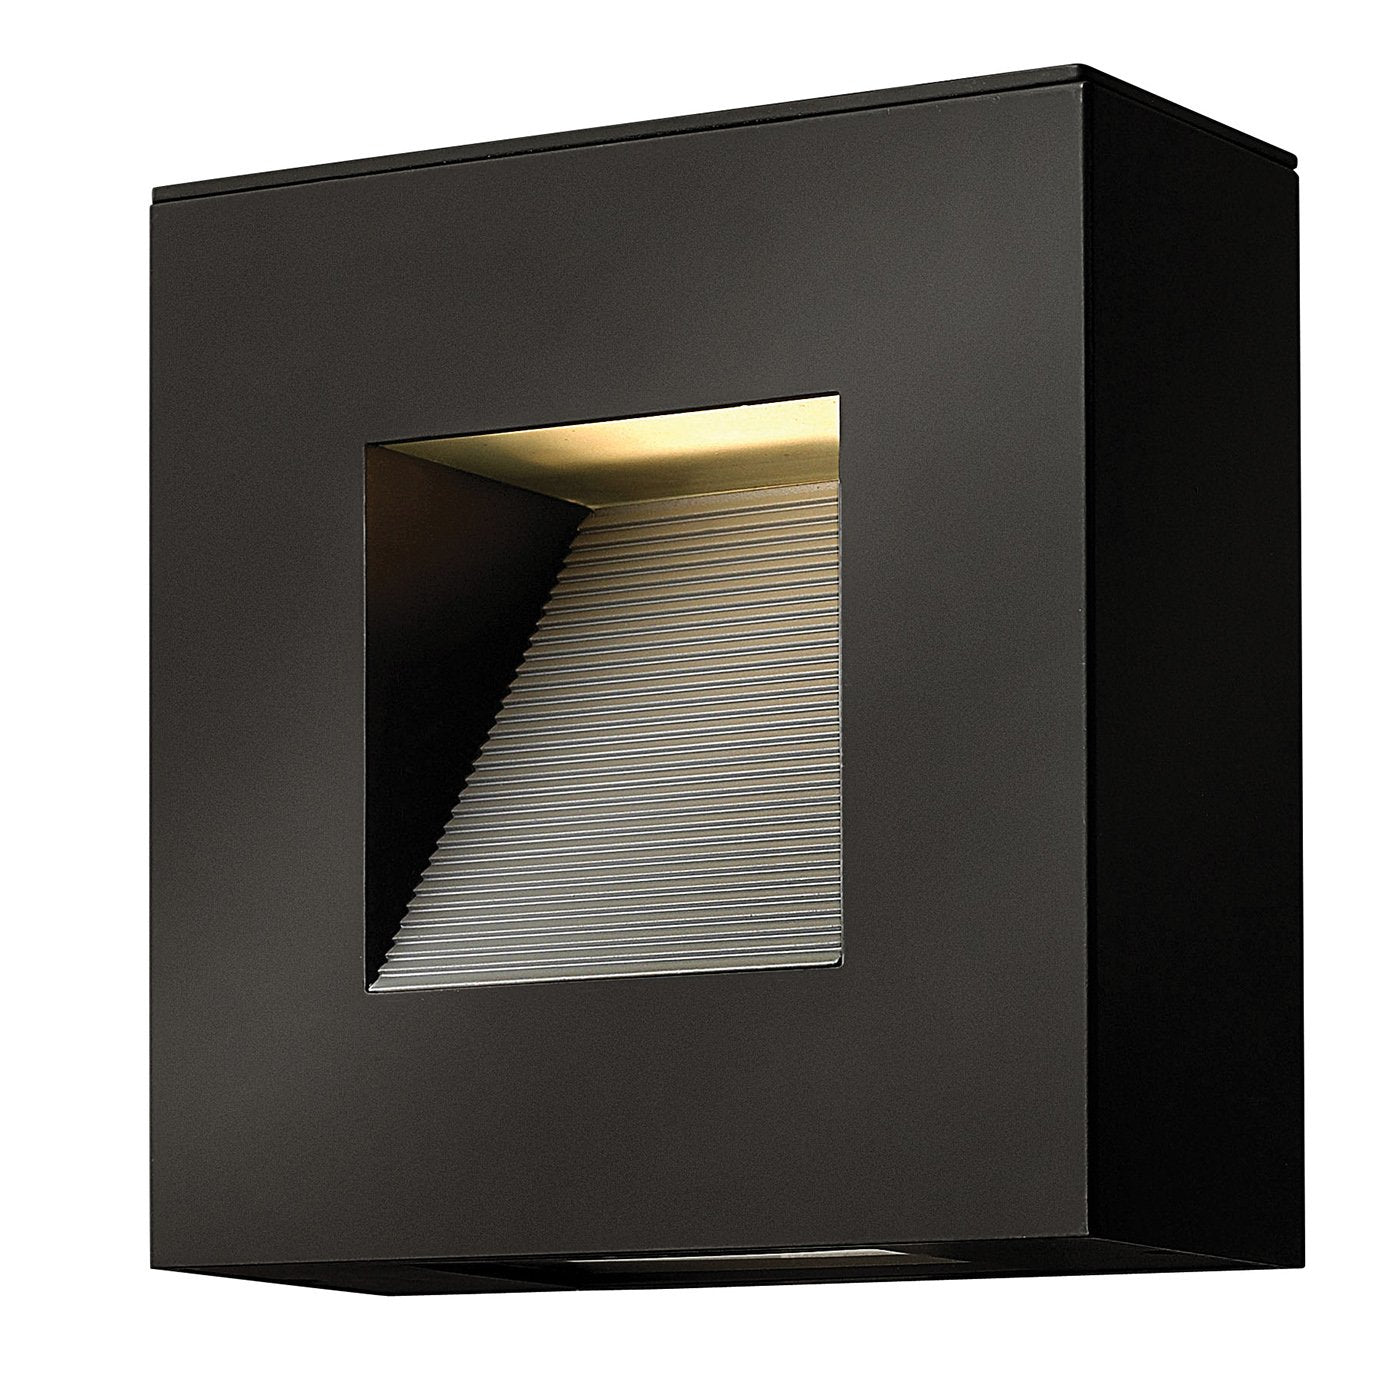 Satin Black Small LED Wall Light